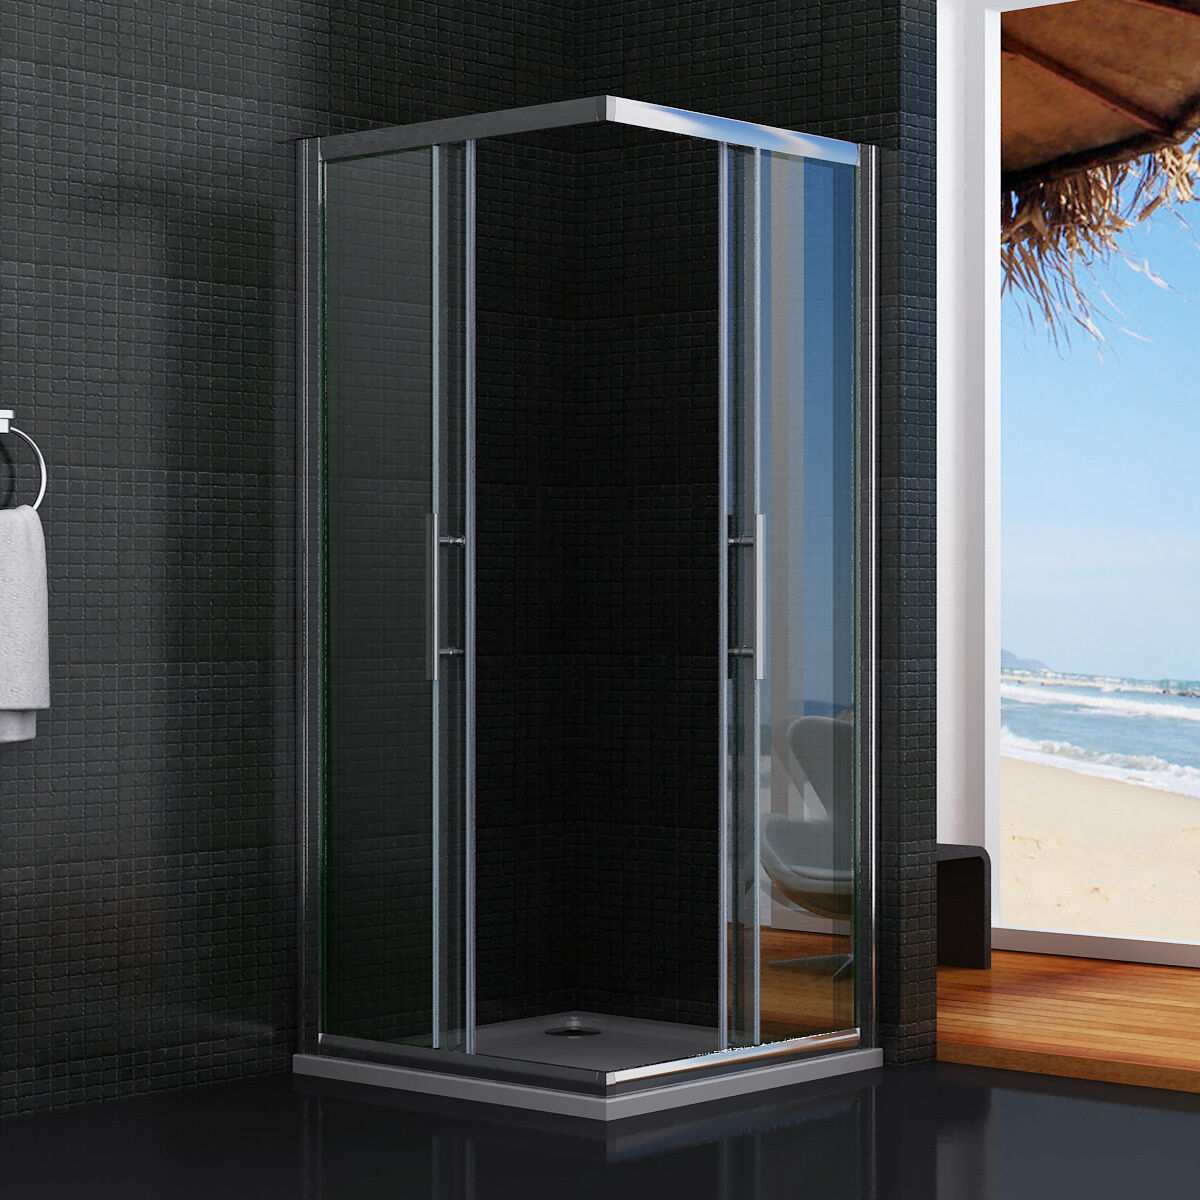 Dusche Schiebet?r Eckeinstieg : Shower Enclosure Sliding Door